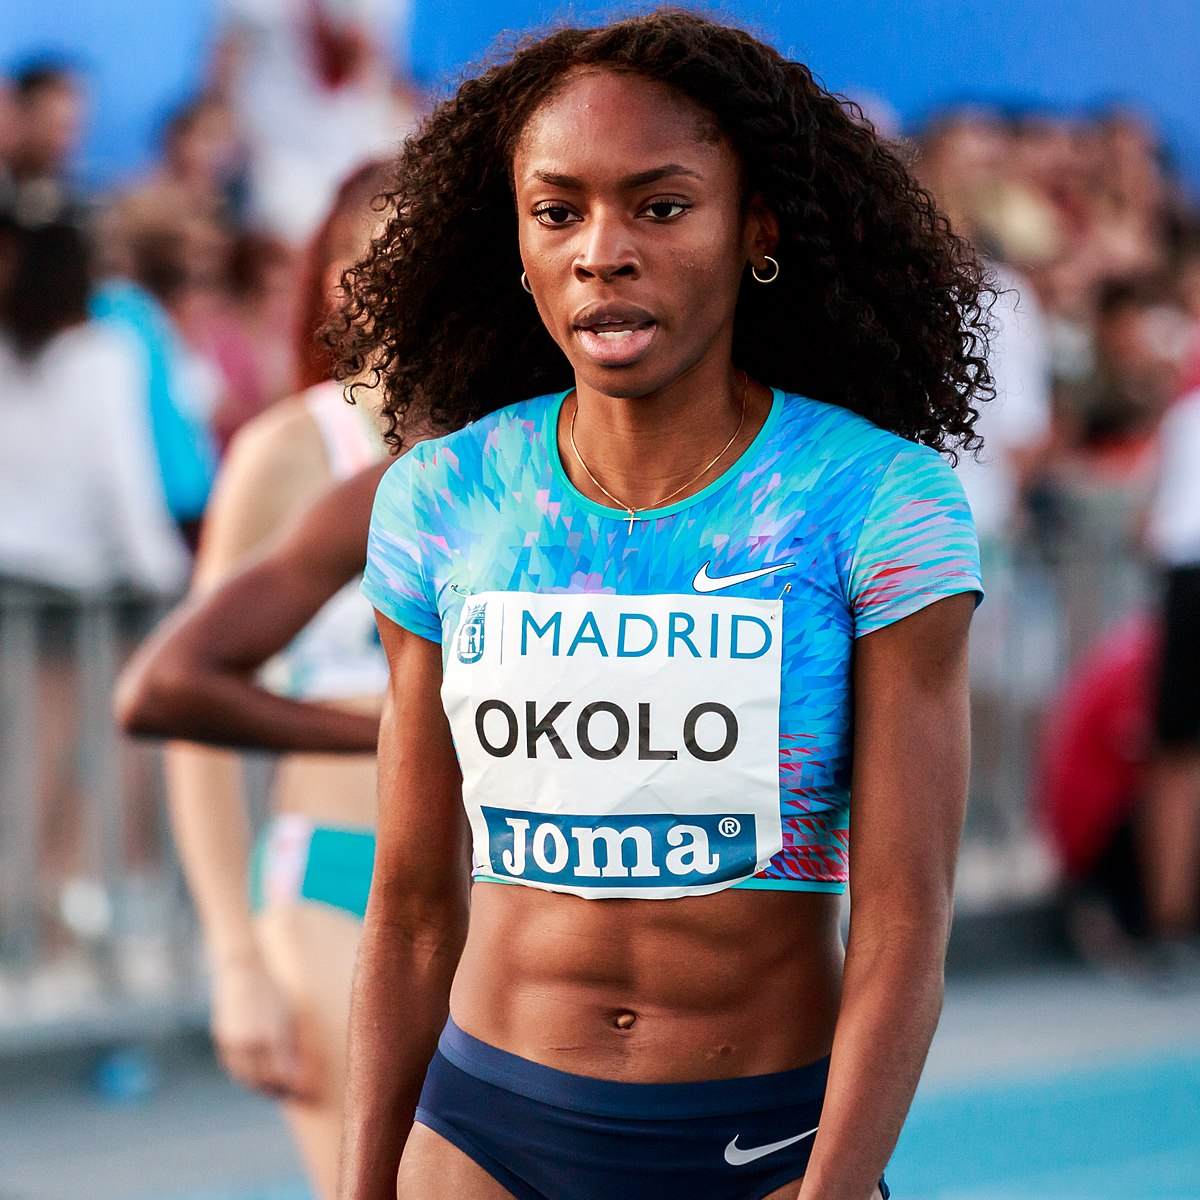 courtney okolo wikipedia